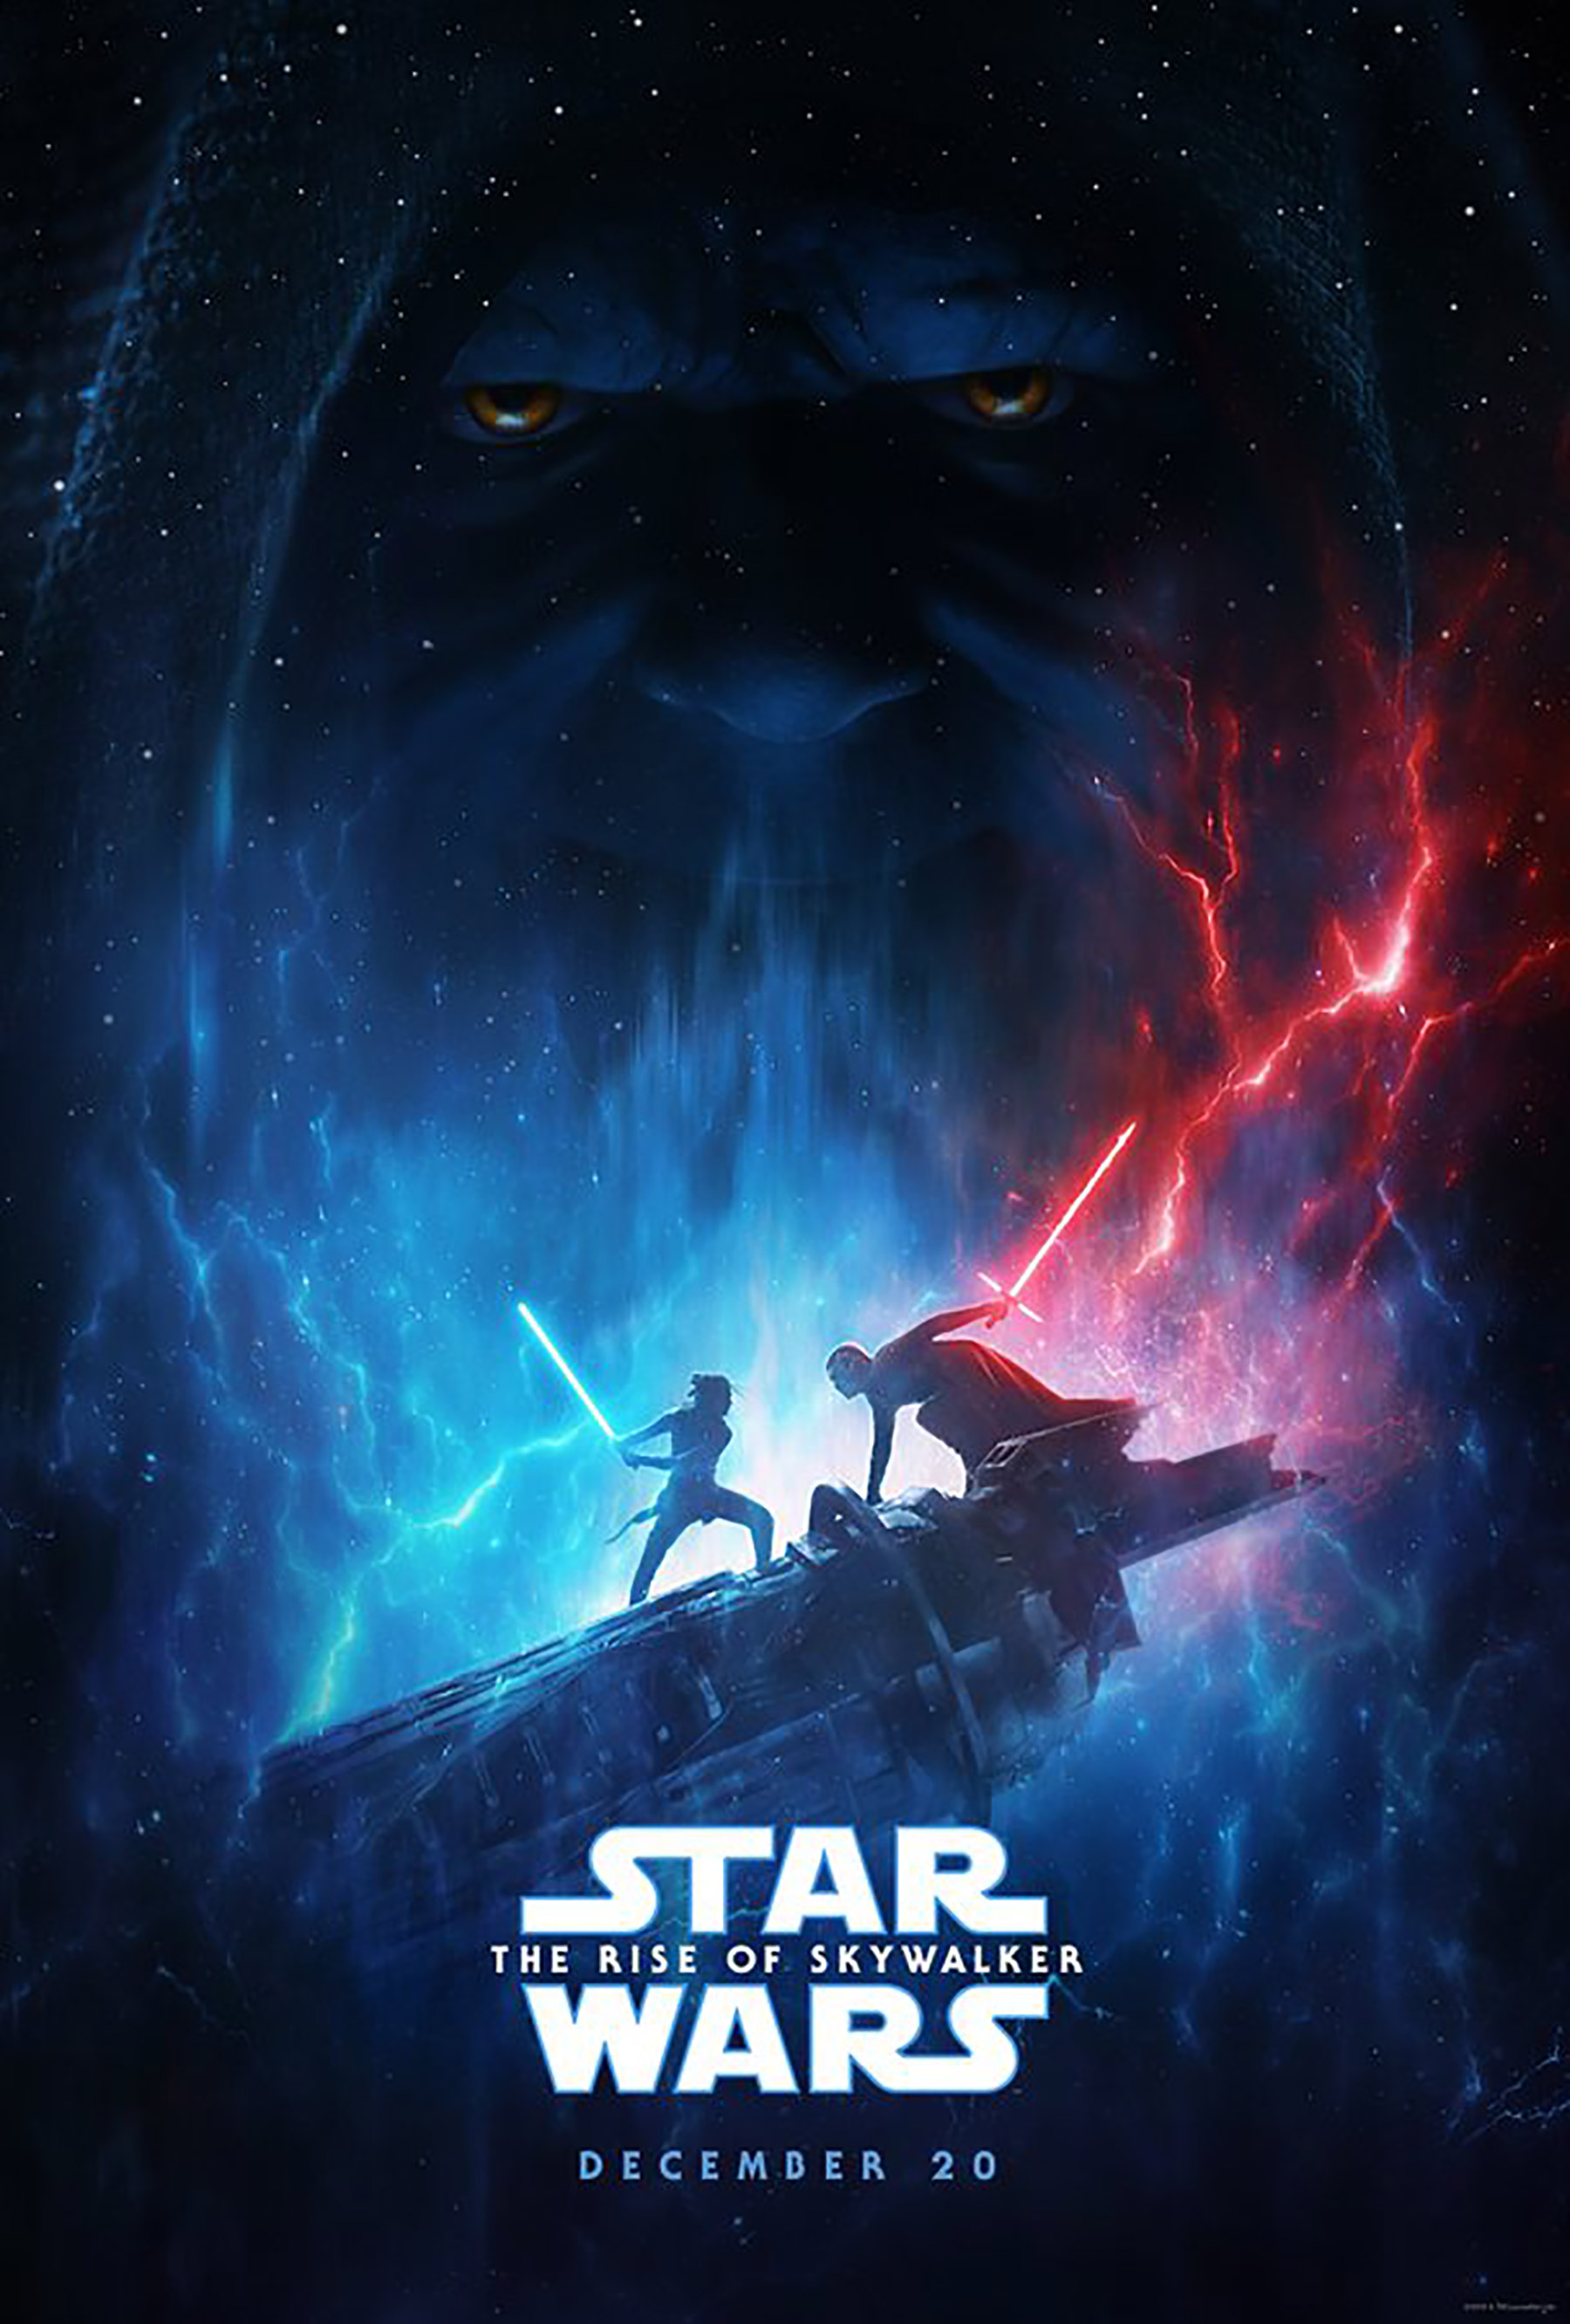 The new poster for 'Star Wars: The Rise of Skywalker'